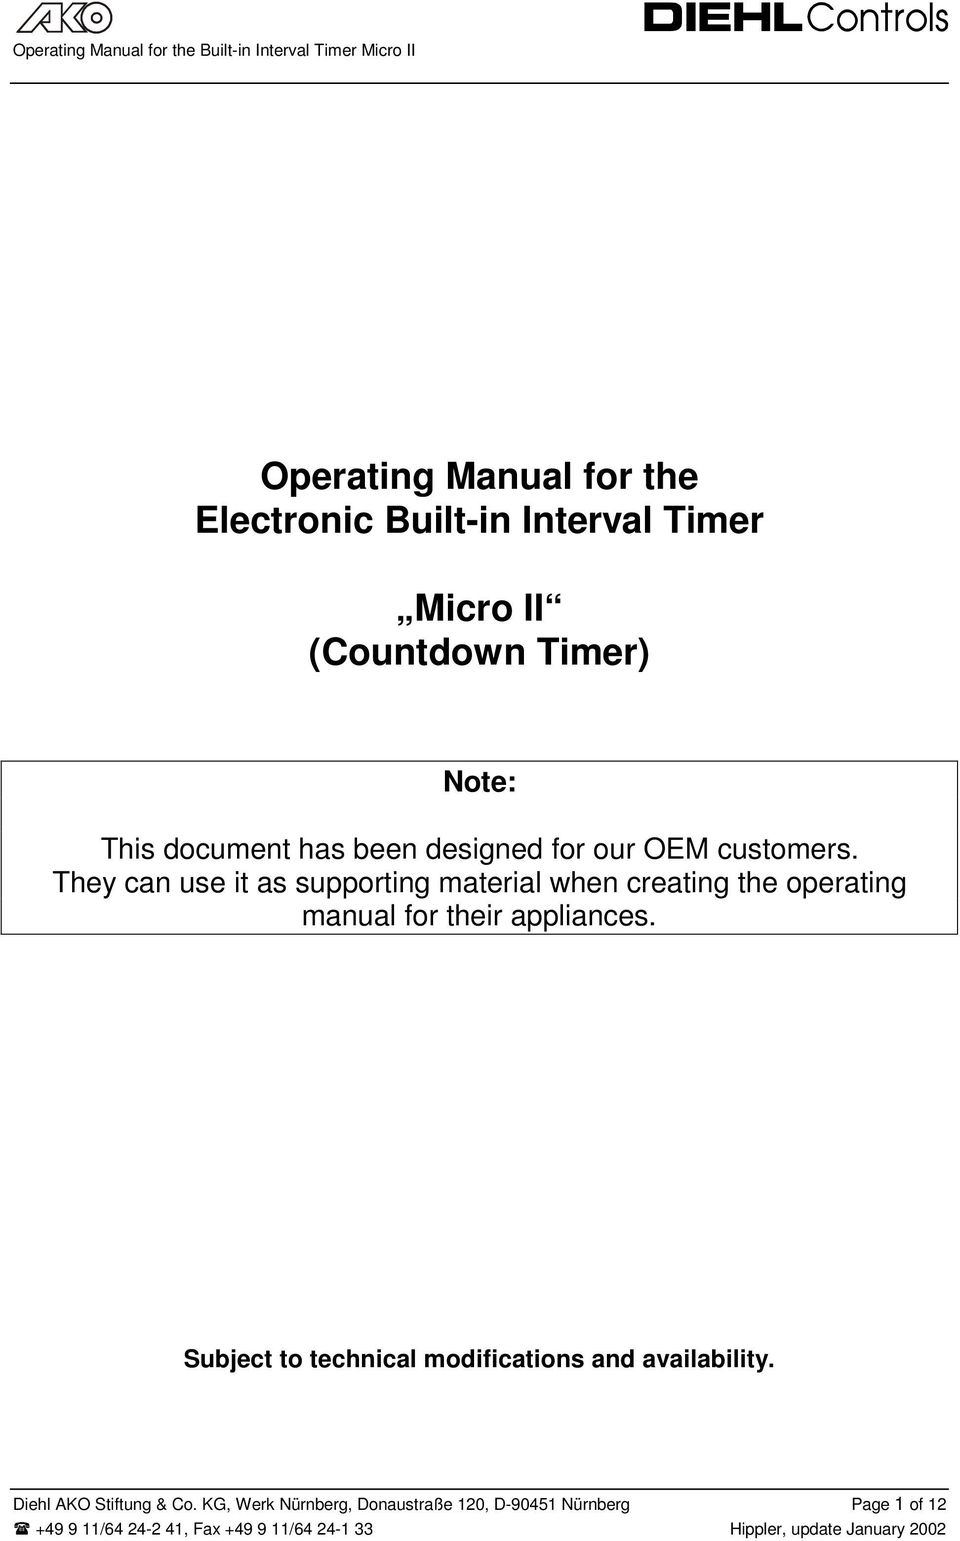 Operating Manual For The Electronic Built In Interval Timer Micro Heating Element With 240 Volts And Buzzer 120 They Can Use It As Supporting Material When Creating Their Appliances